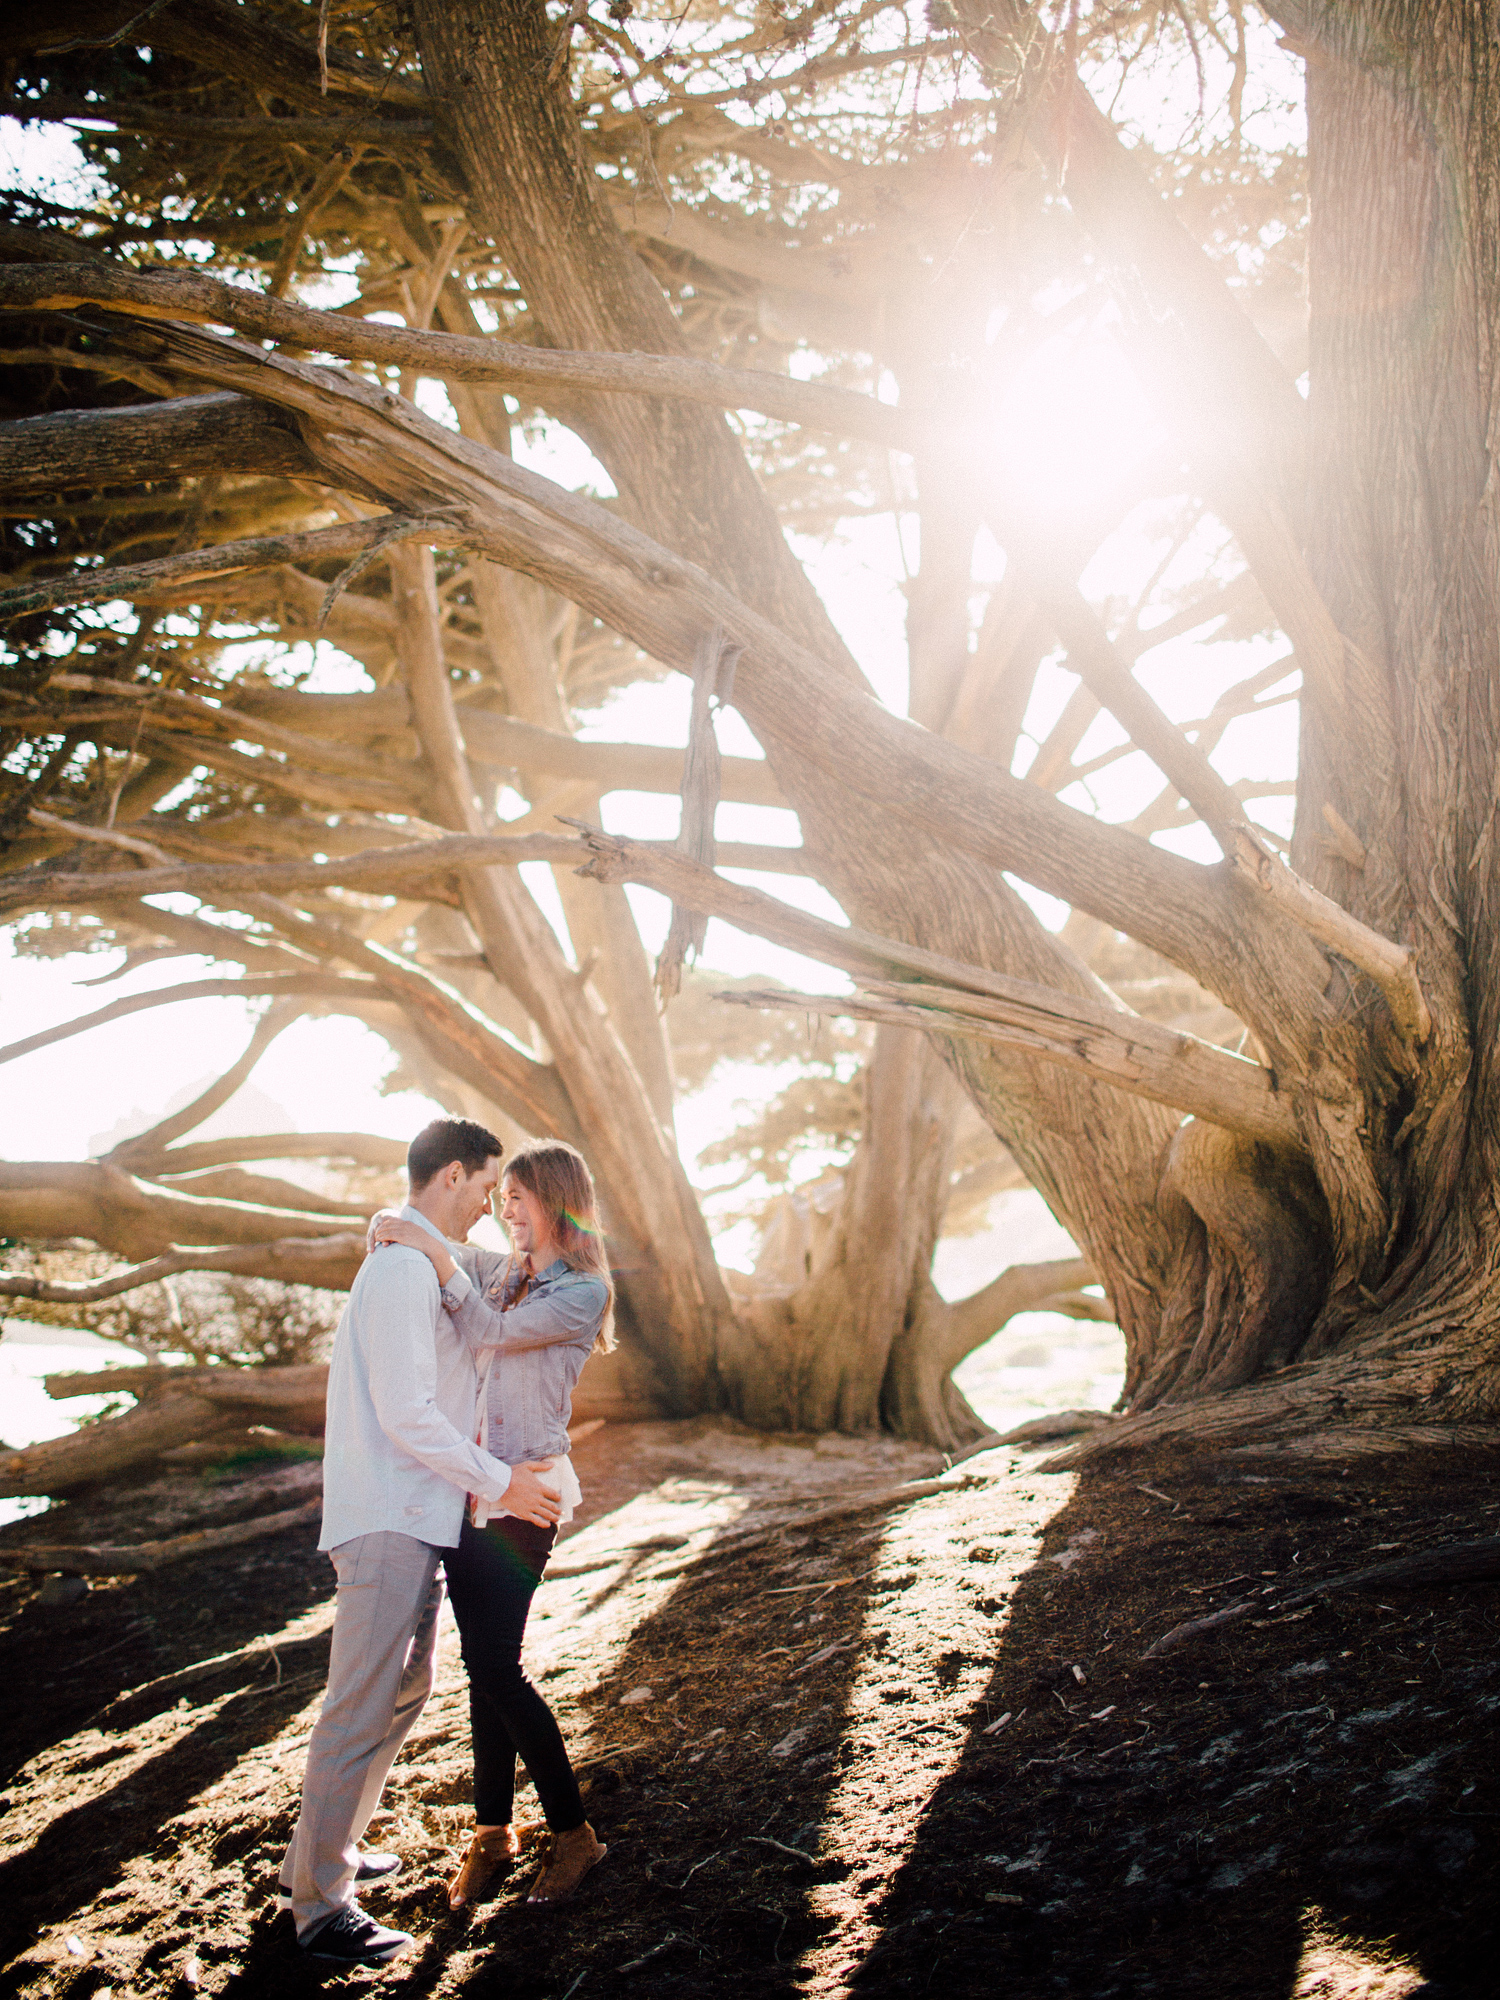 ryan-flynn-photography-best-wedding-photos-2014-0094.JPG